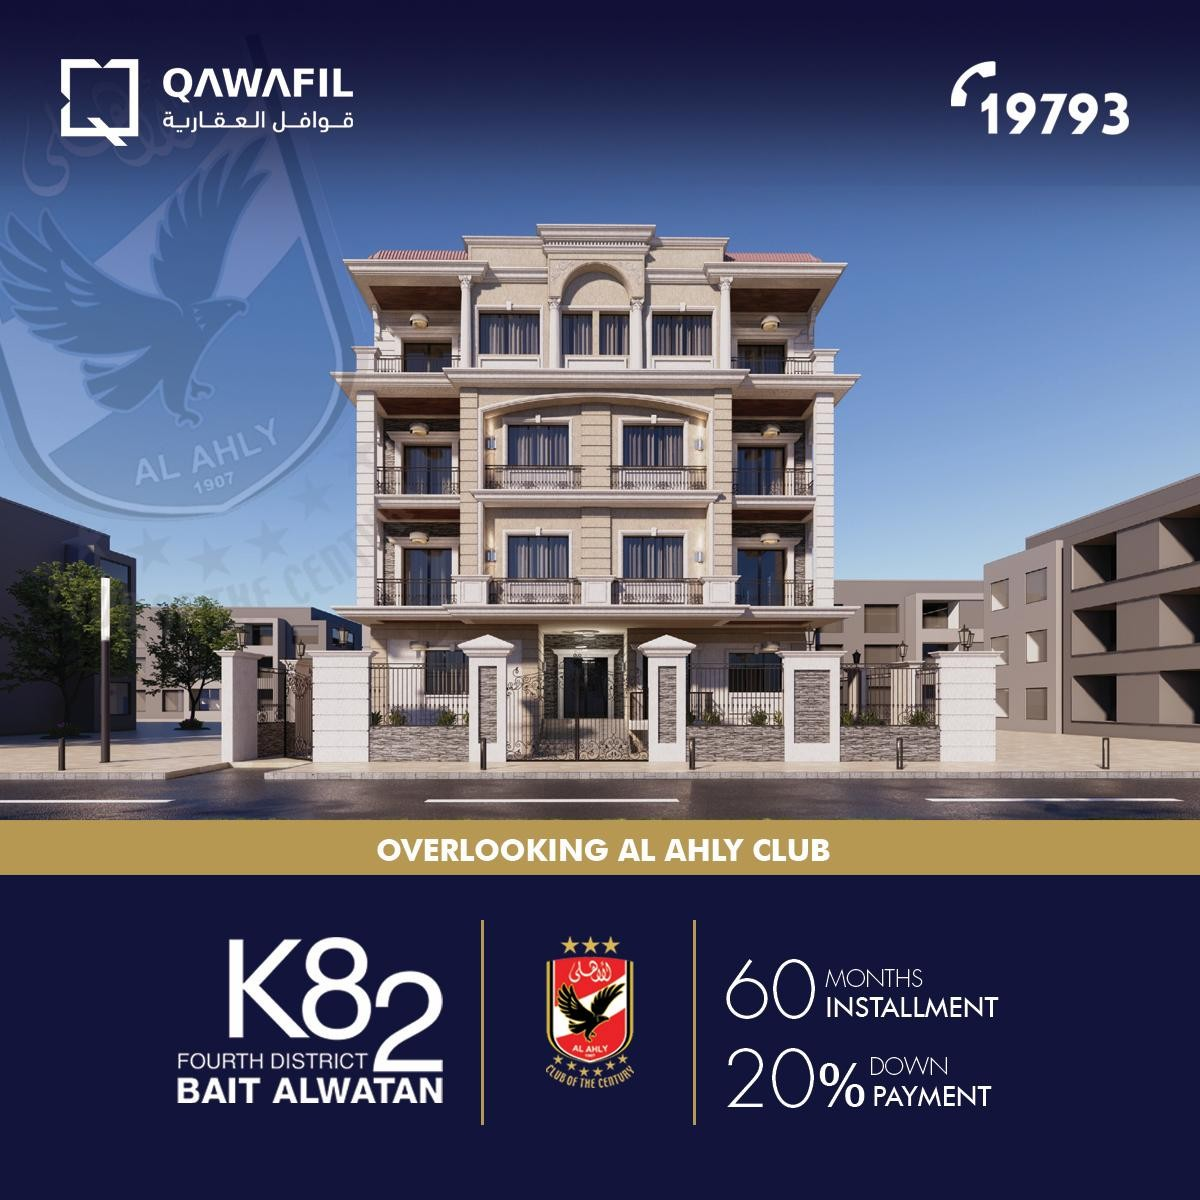 Your Apartment Overlooking Al Ahly Club